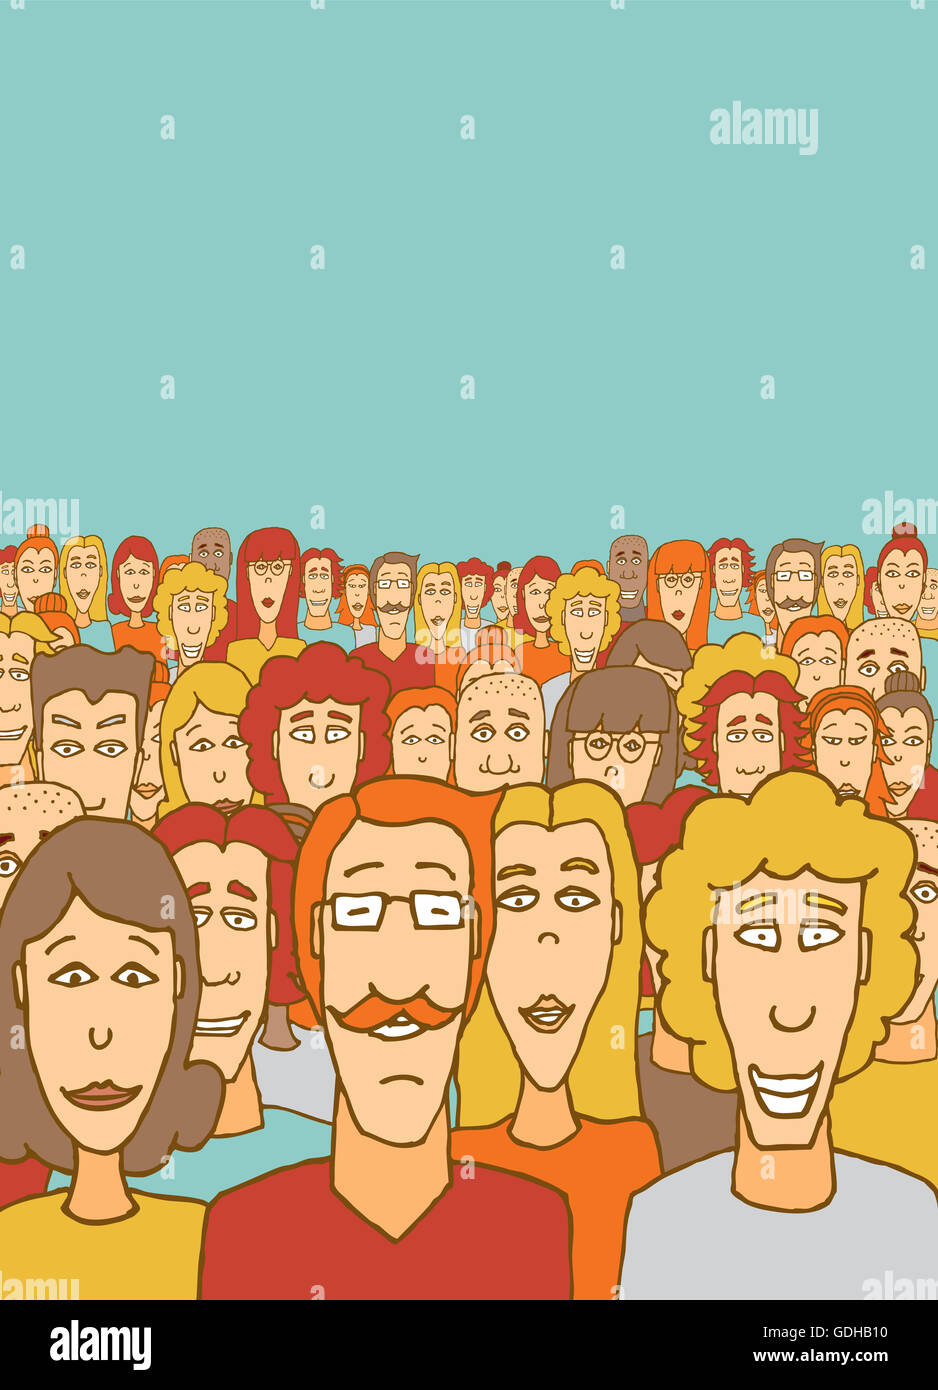 Cartoon illustration of a large crowd community - Stock Image